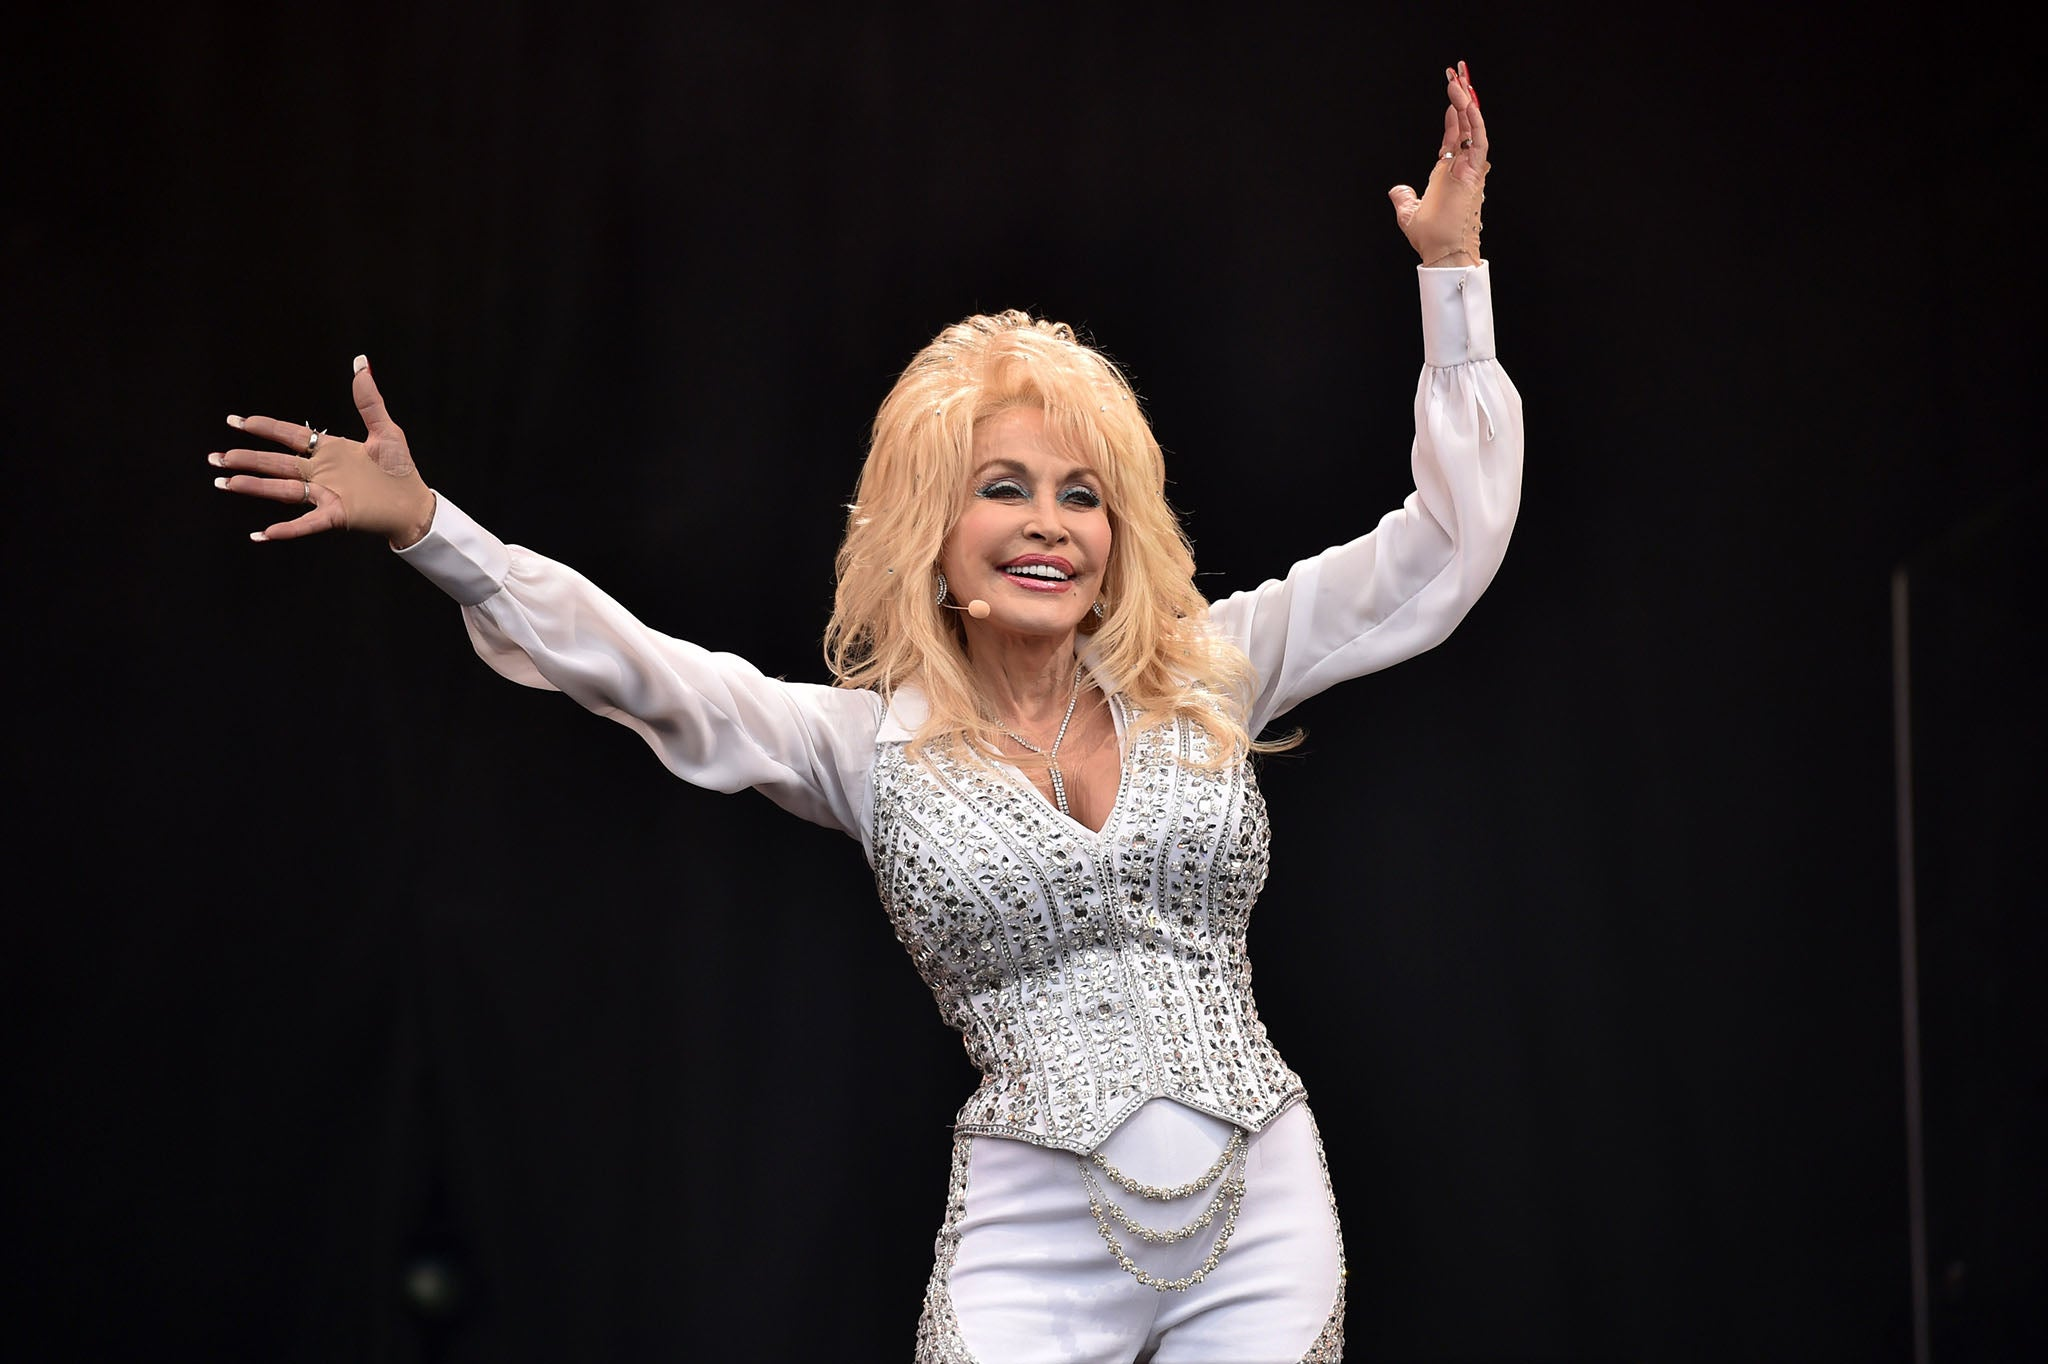 the legendary dolly parton The legendary dolly parton 1381 words | 6 pages american icon is, dolly parton dolly has surpassed any rags to riches story that ever lived she has touched the.